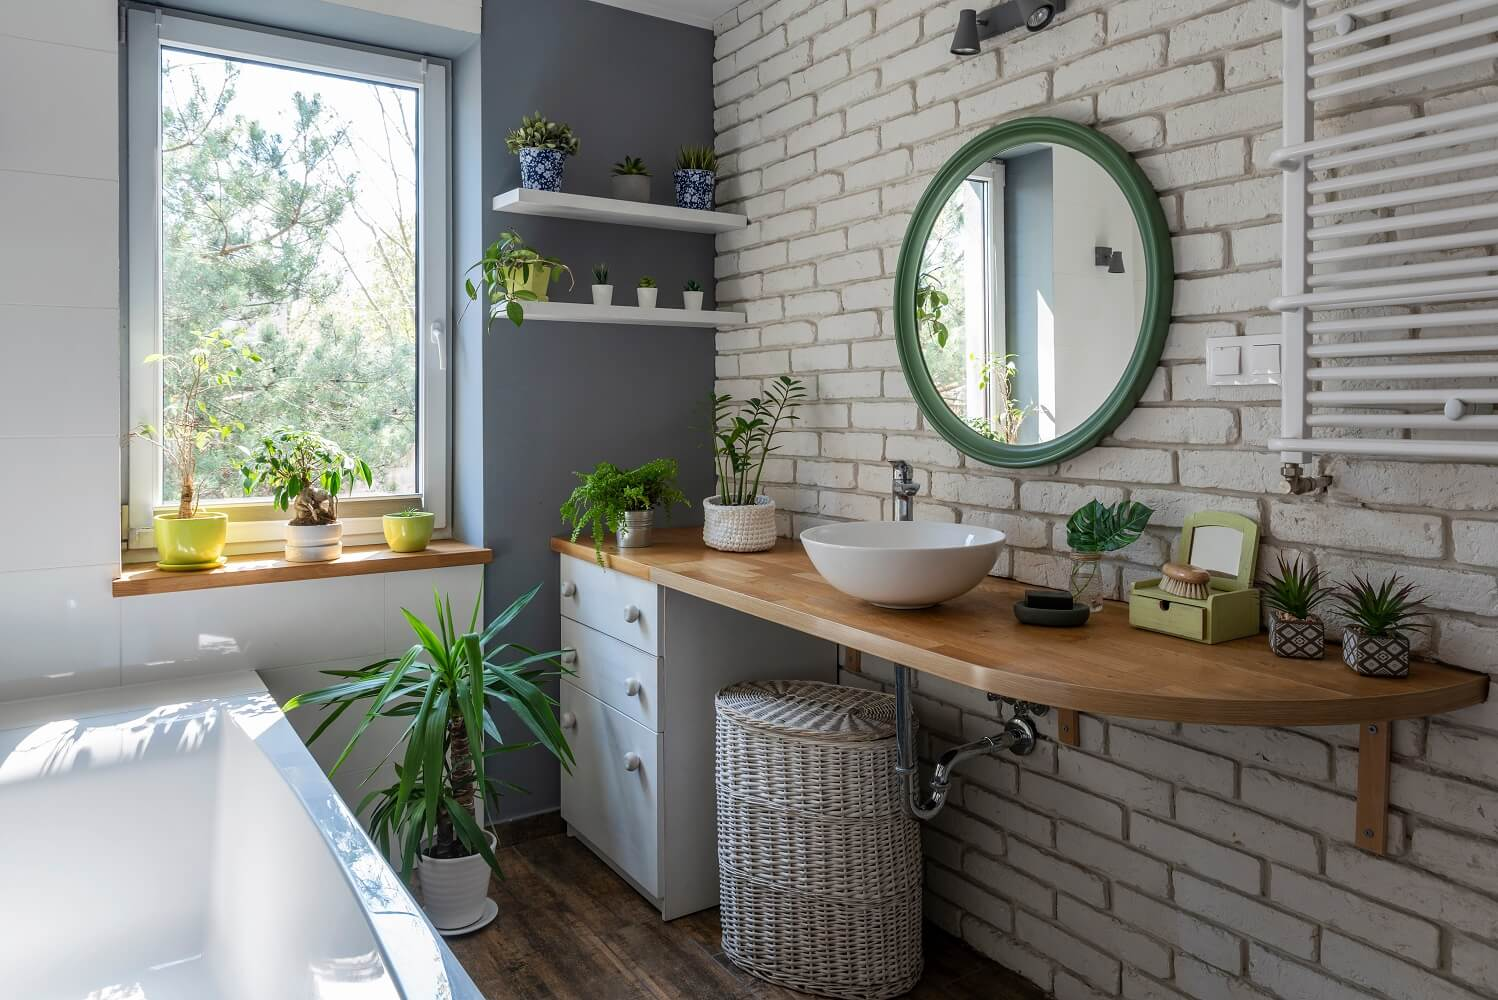 Bathroom Decoration Ideas for Small Spaces